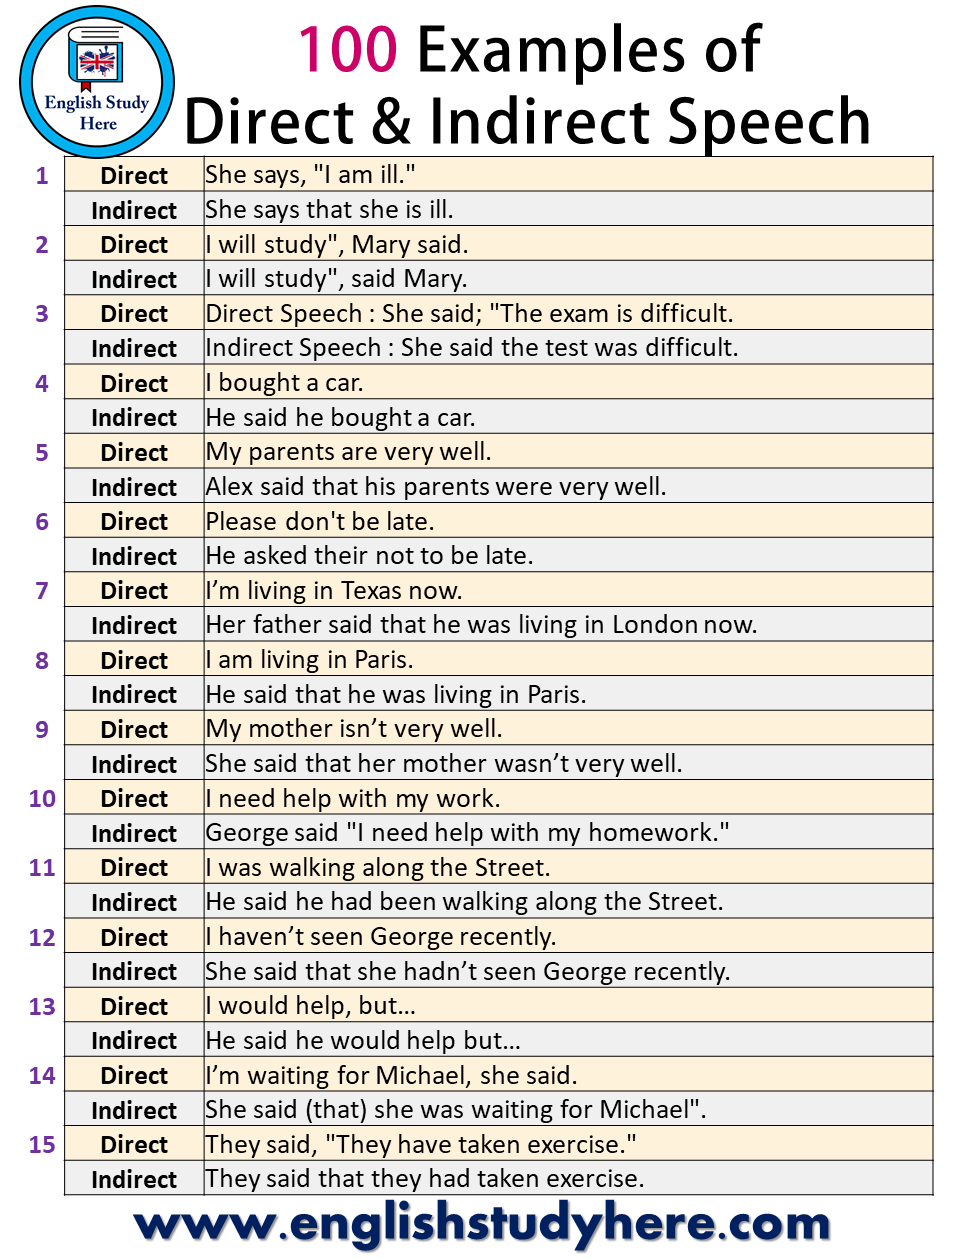 100 Examples of Direct and Indirect Speech - English Study Here